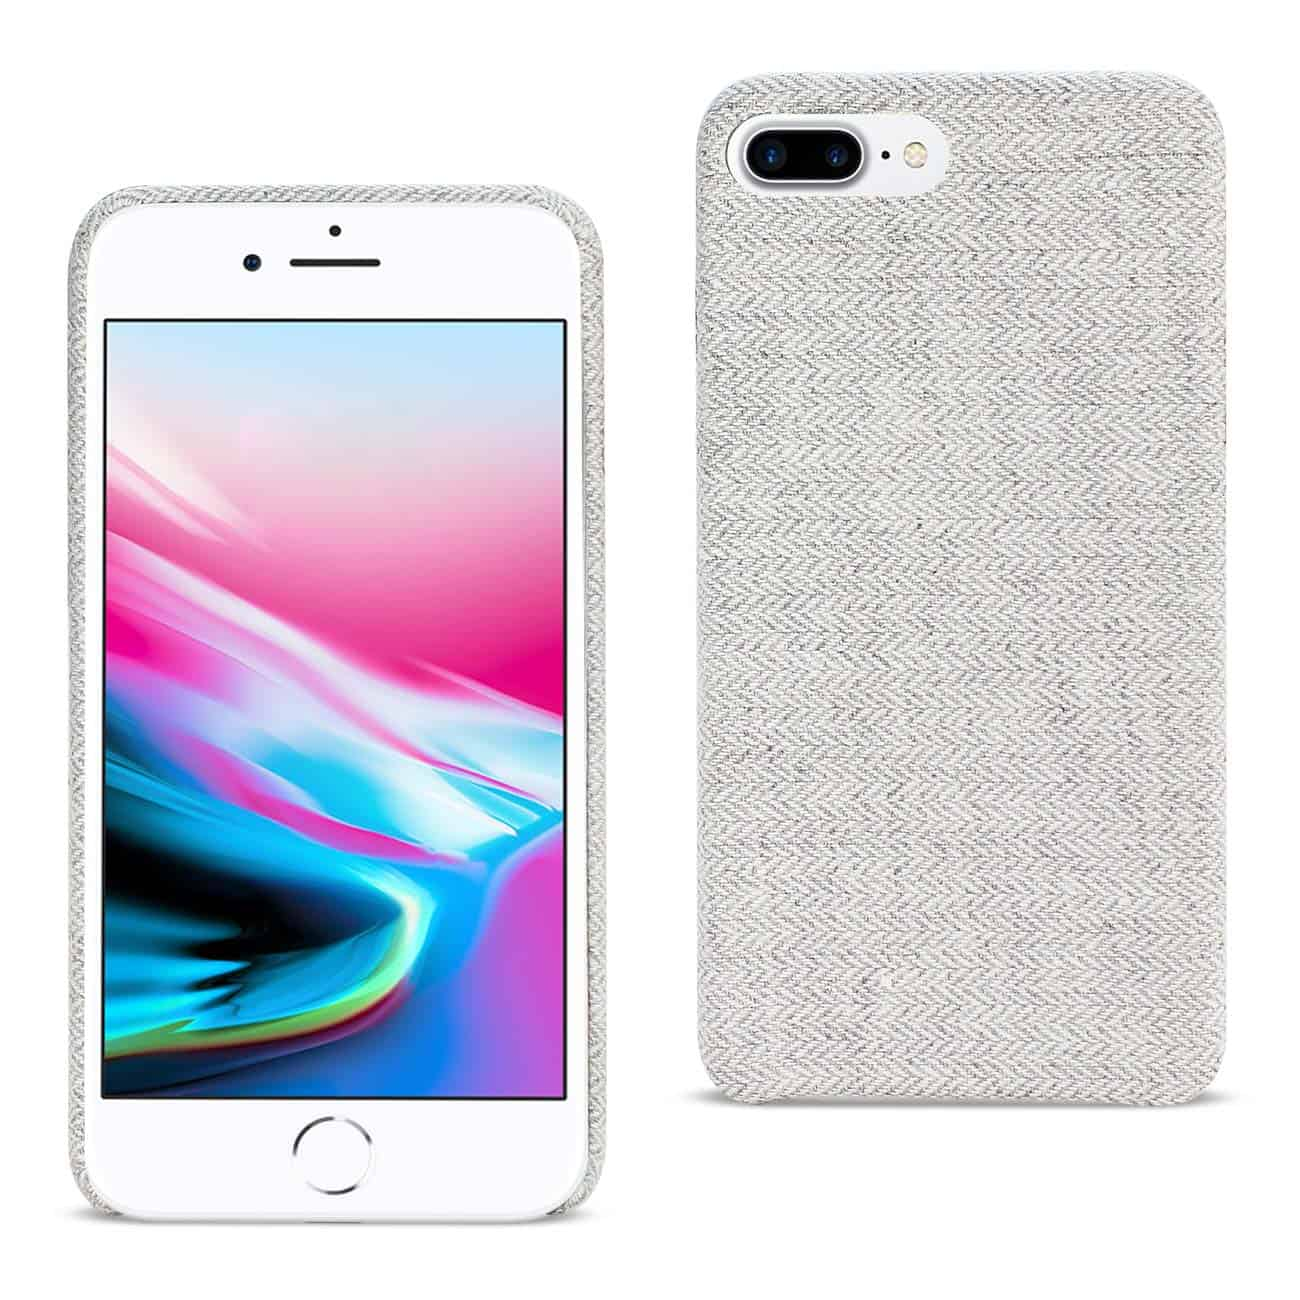 IPHONE 8 PLUS HERRINGBONE FABRIC IN LIGHT GRAY